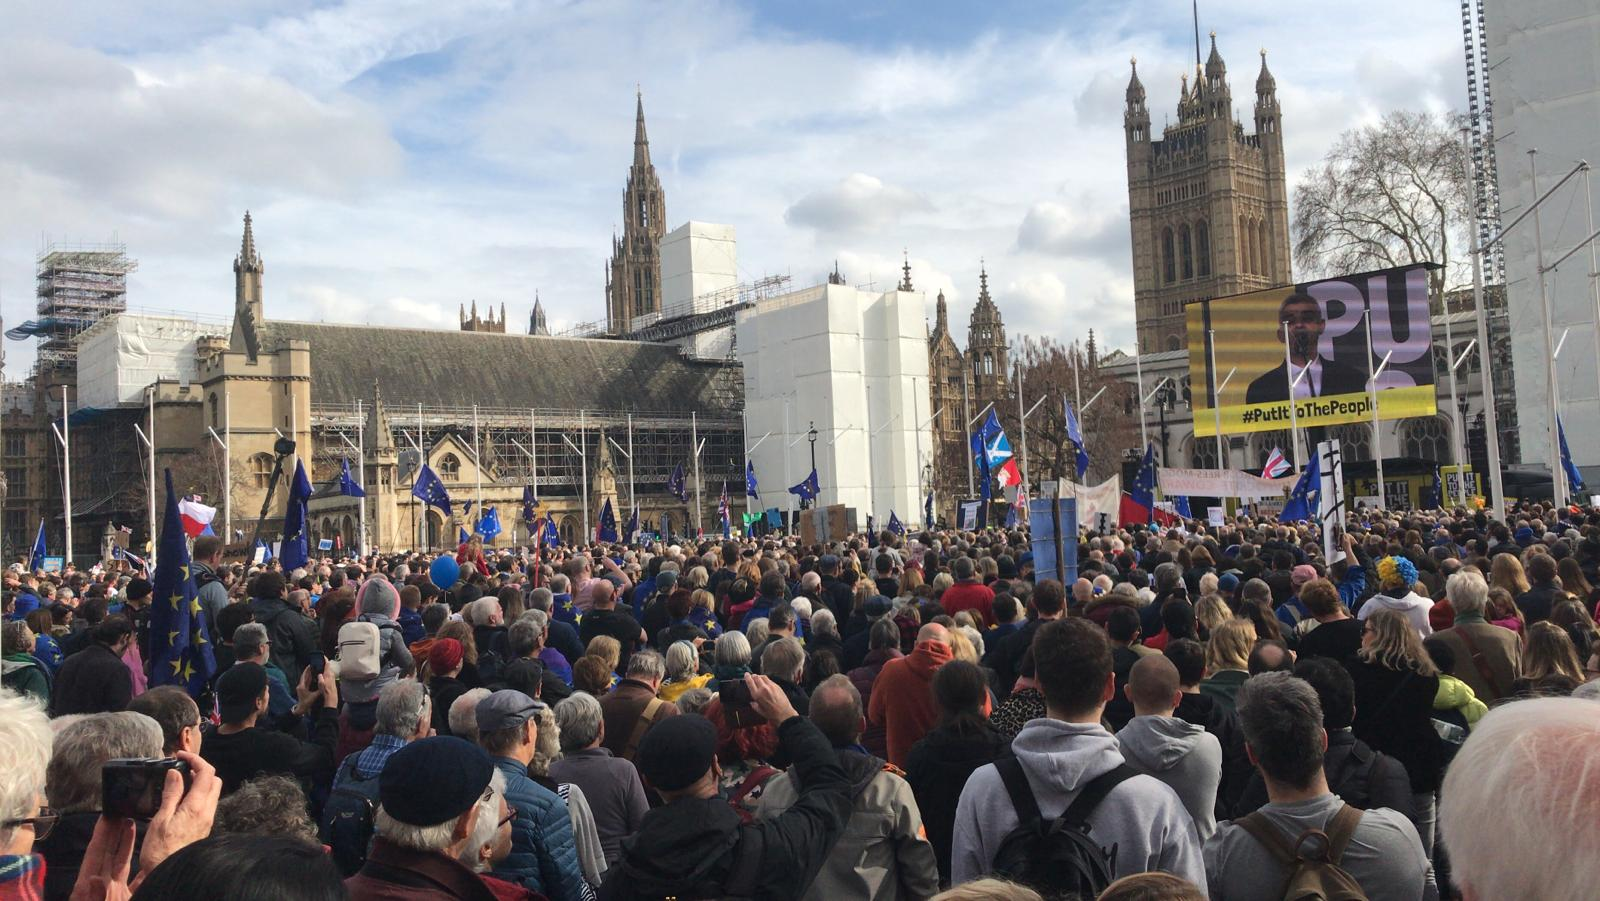 A number of anti-Brexit campaigners will address the crowd in Parliament Square.